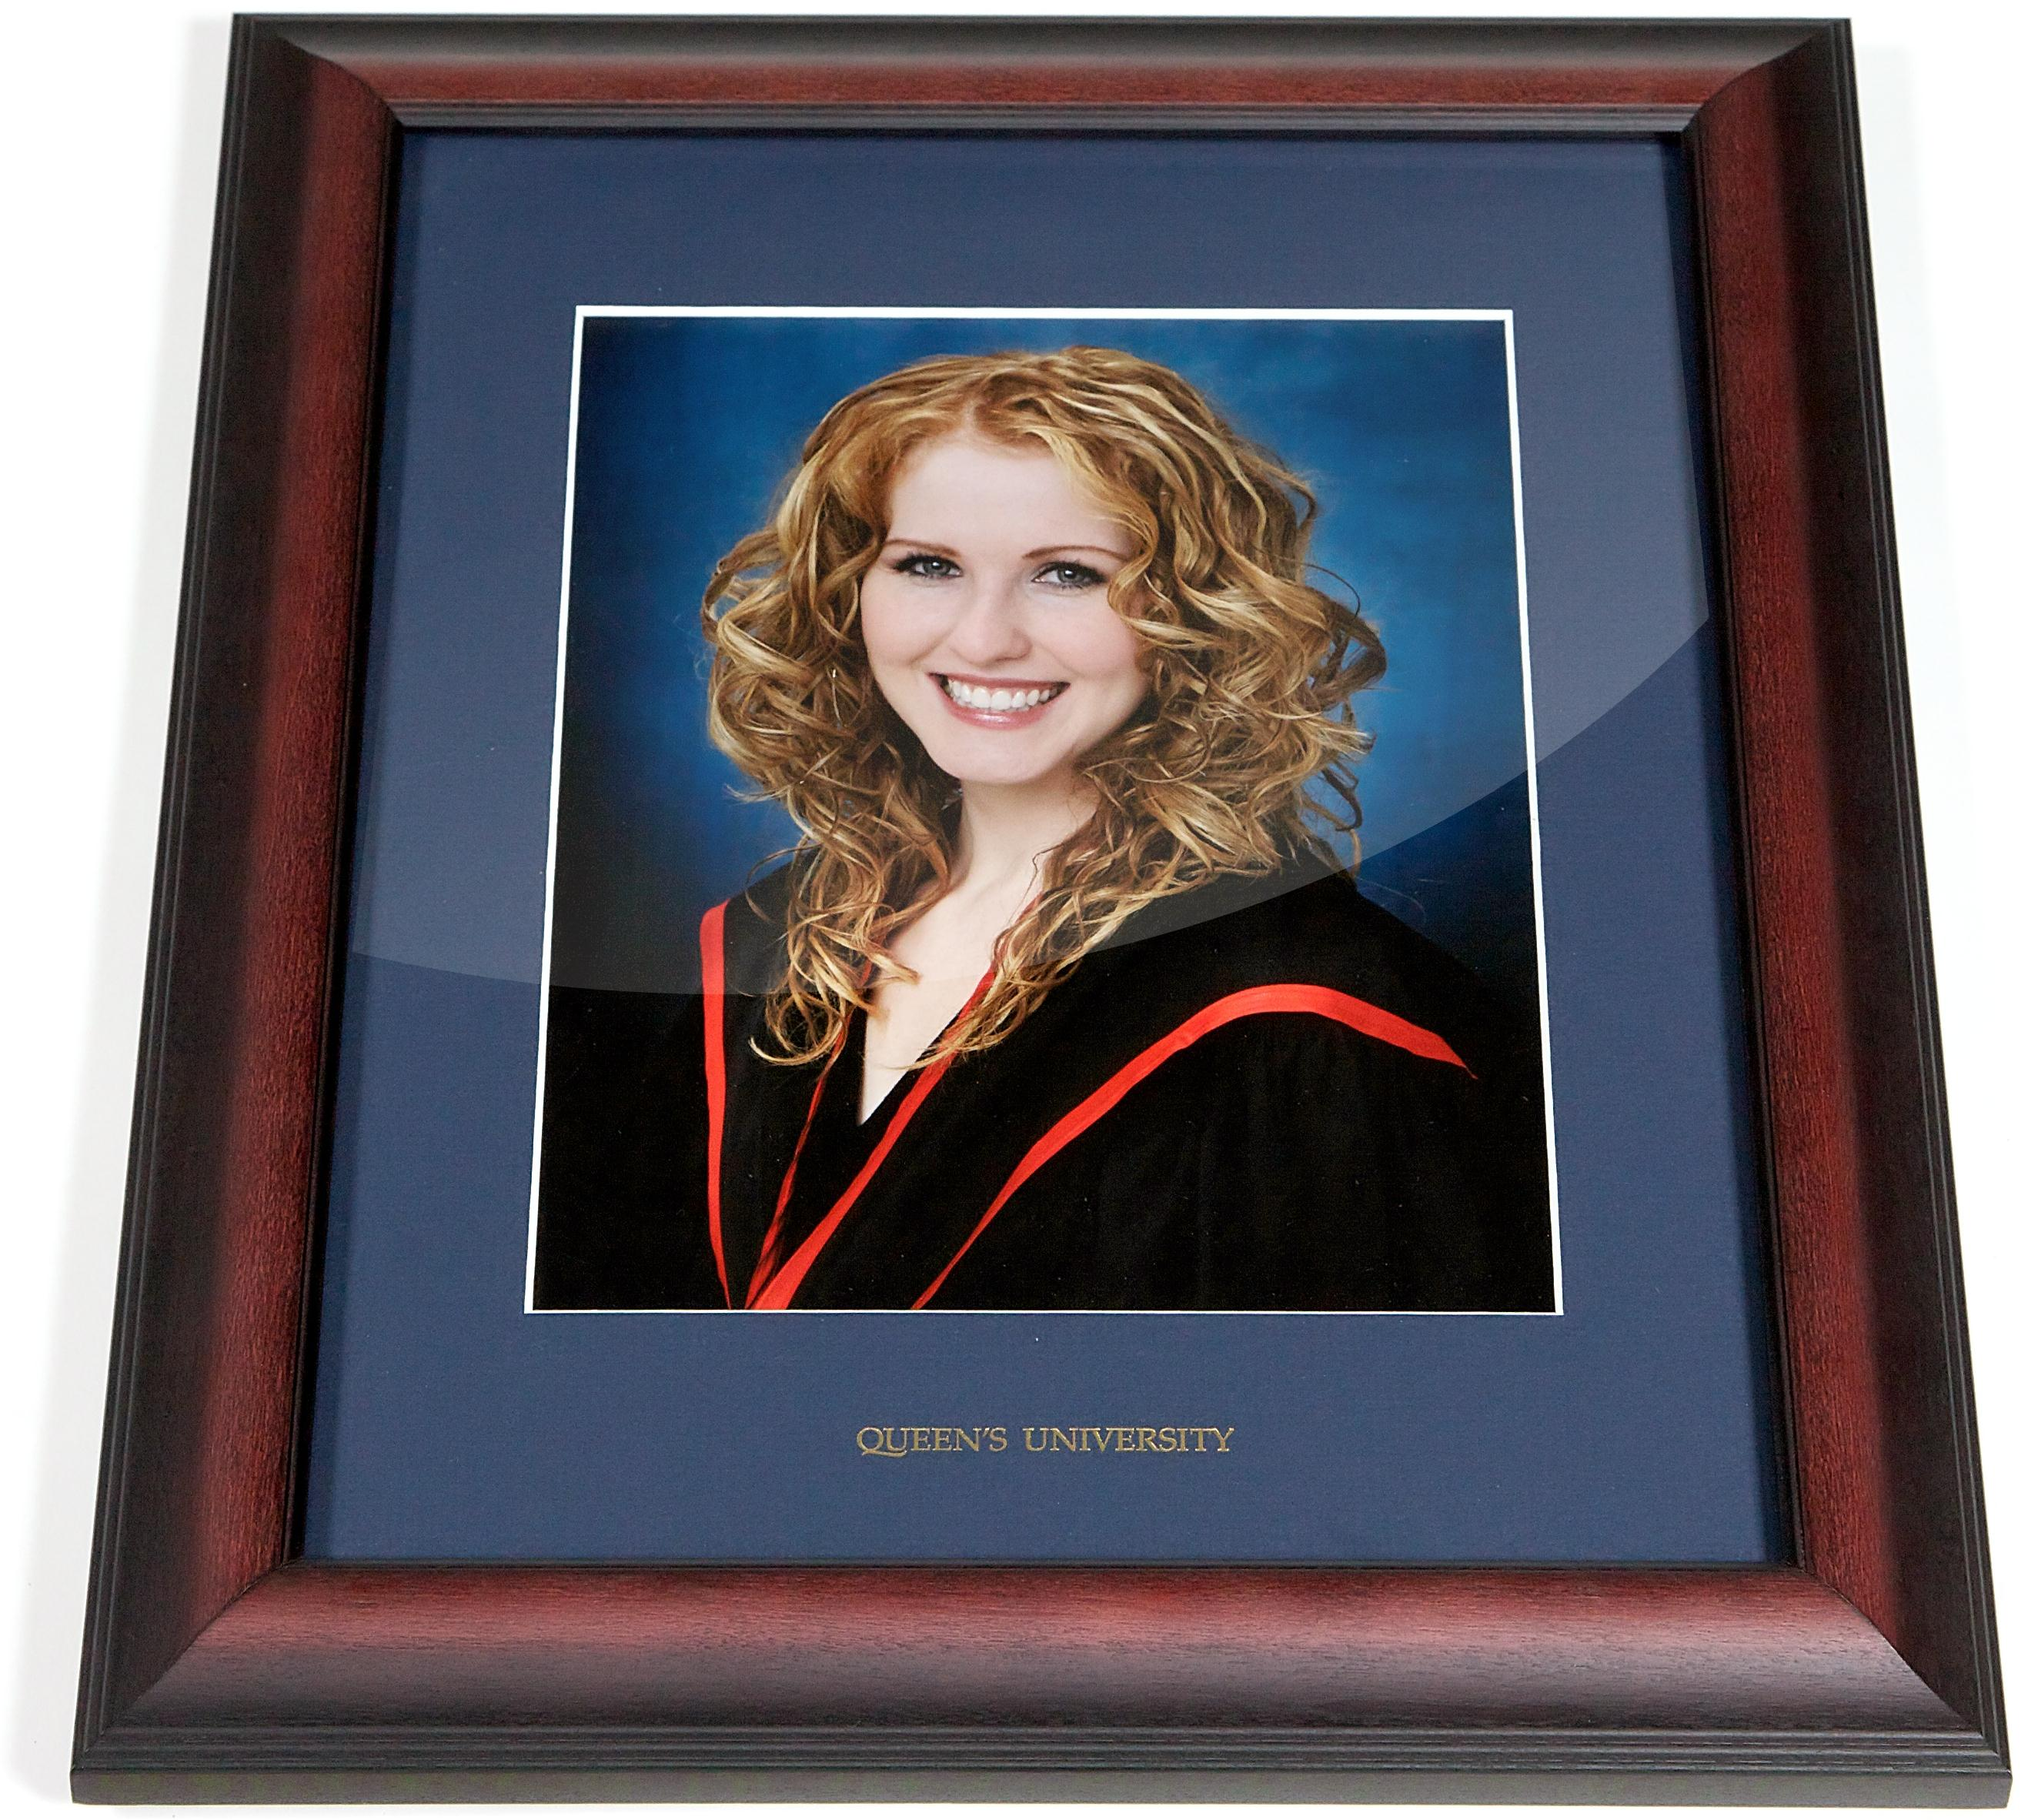 #3 Briarwood Frame picture